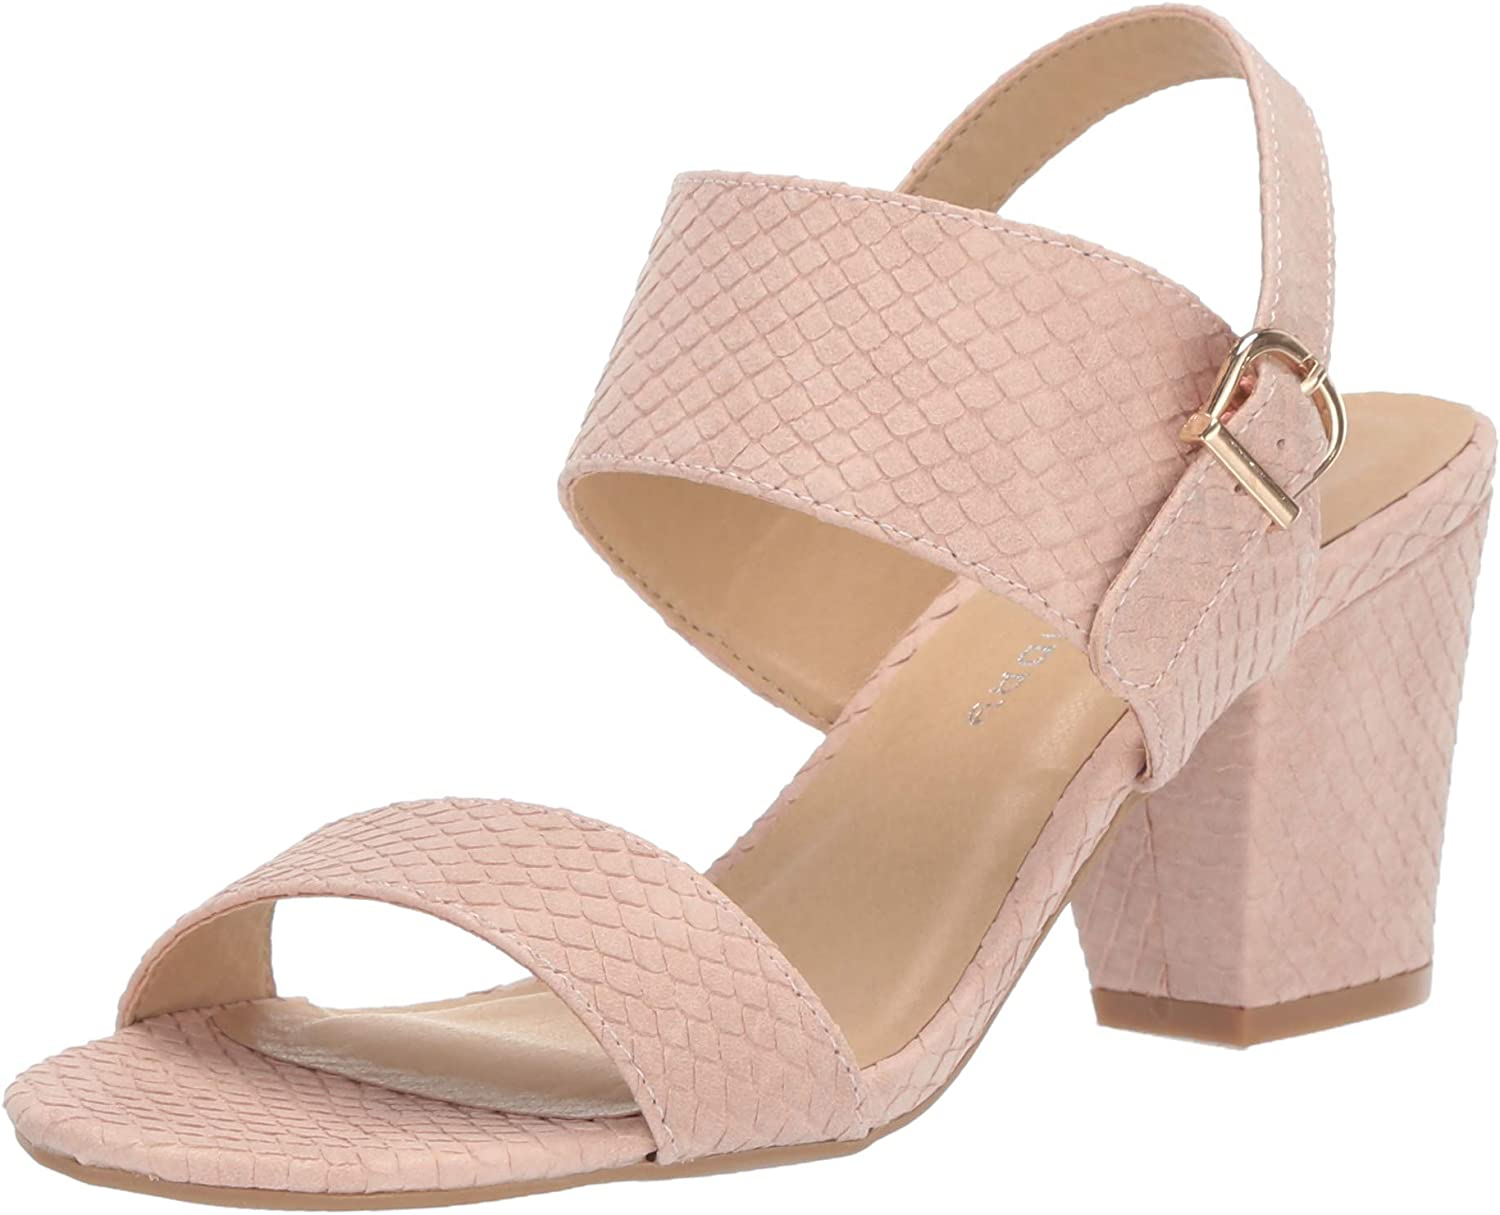 CL by Chinese Laundry Women's Spot on Heeled Sandal